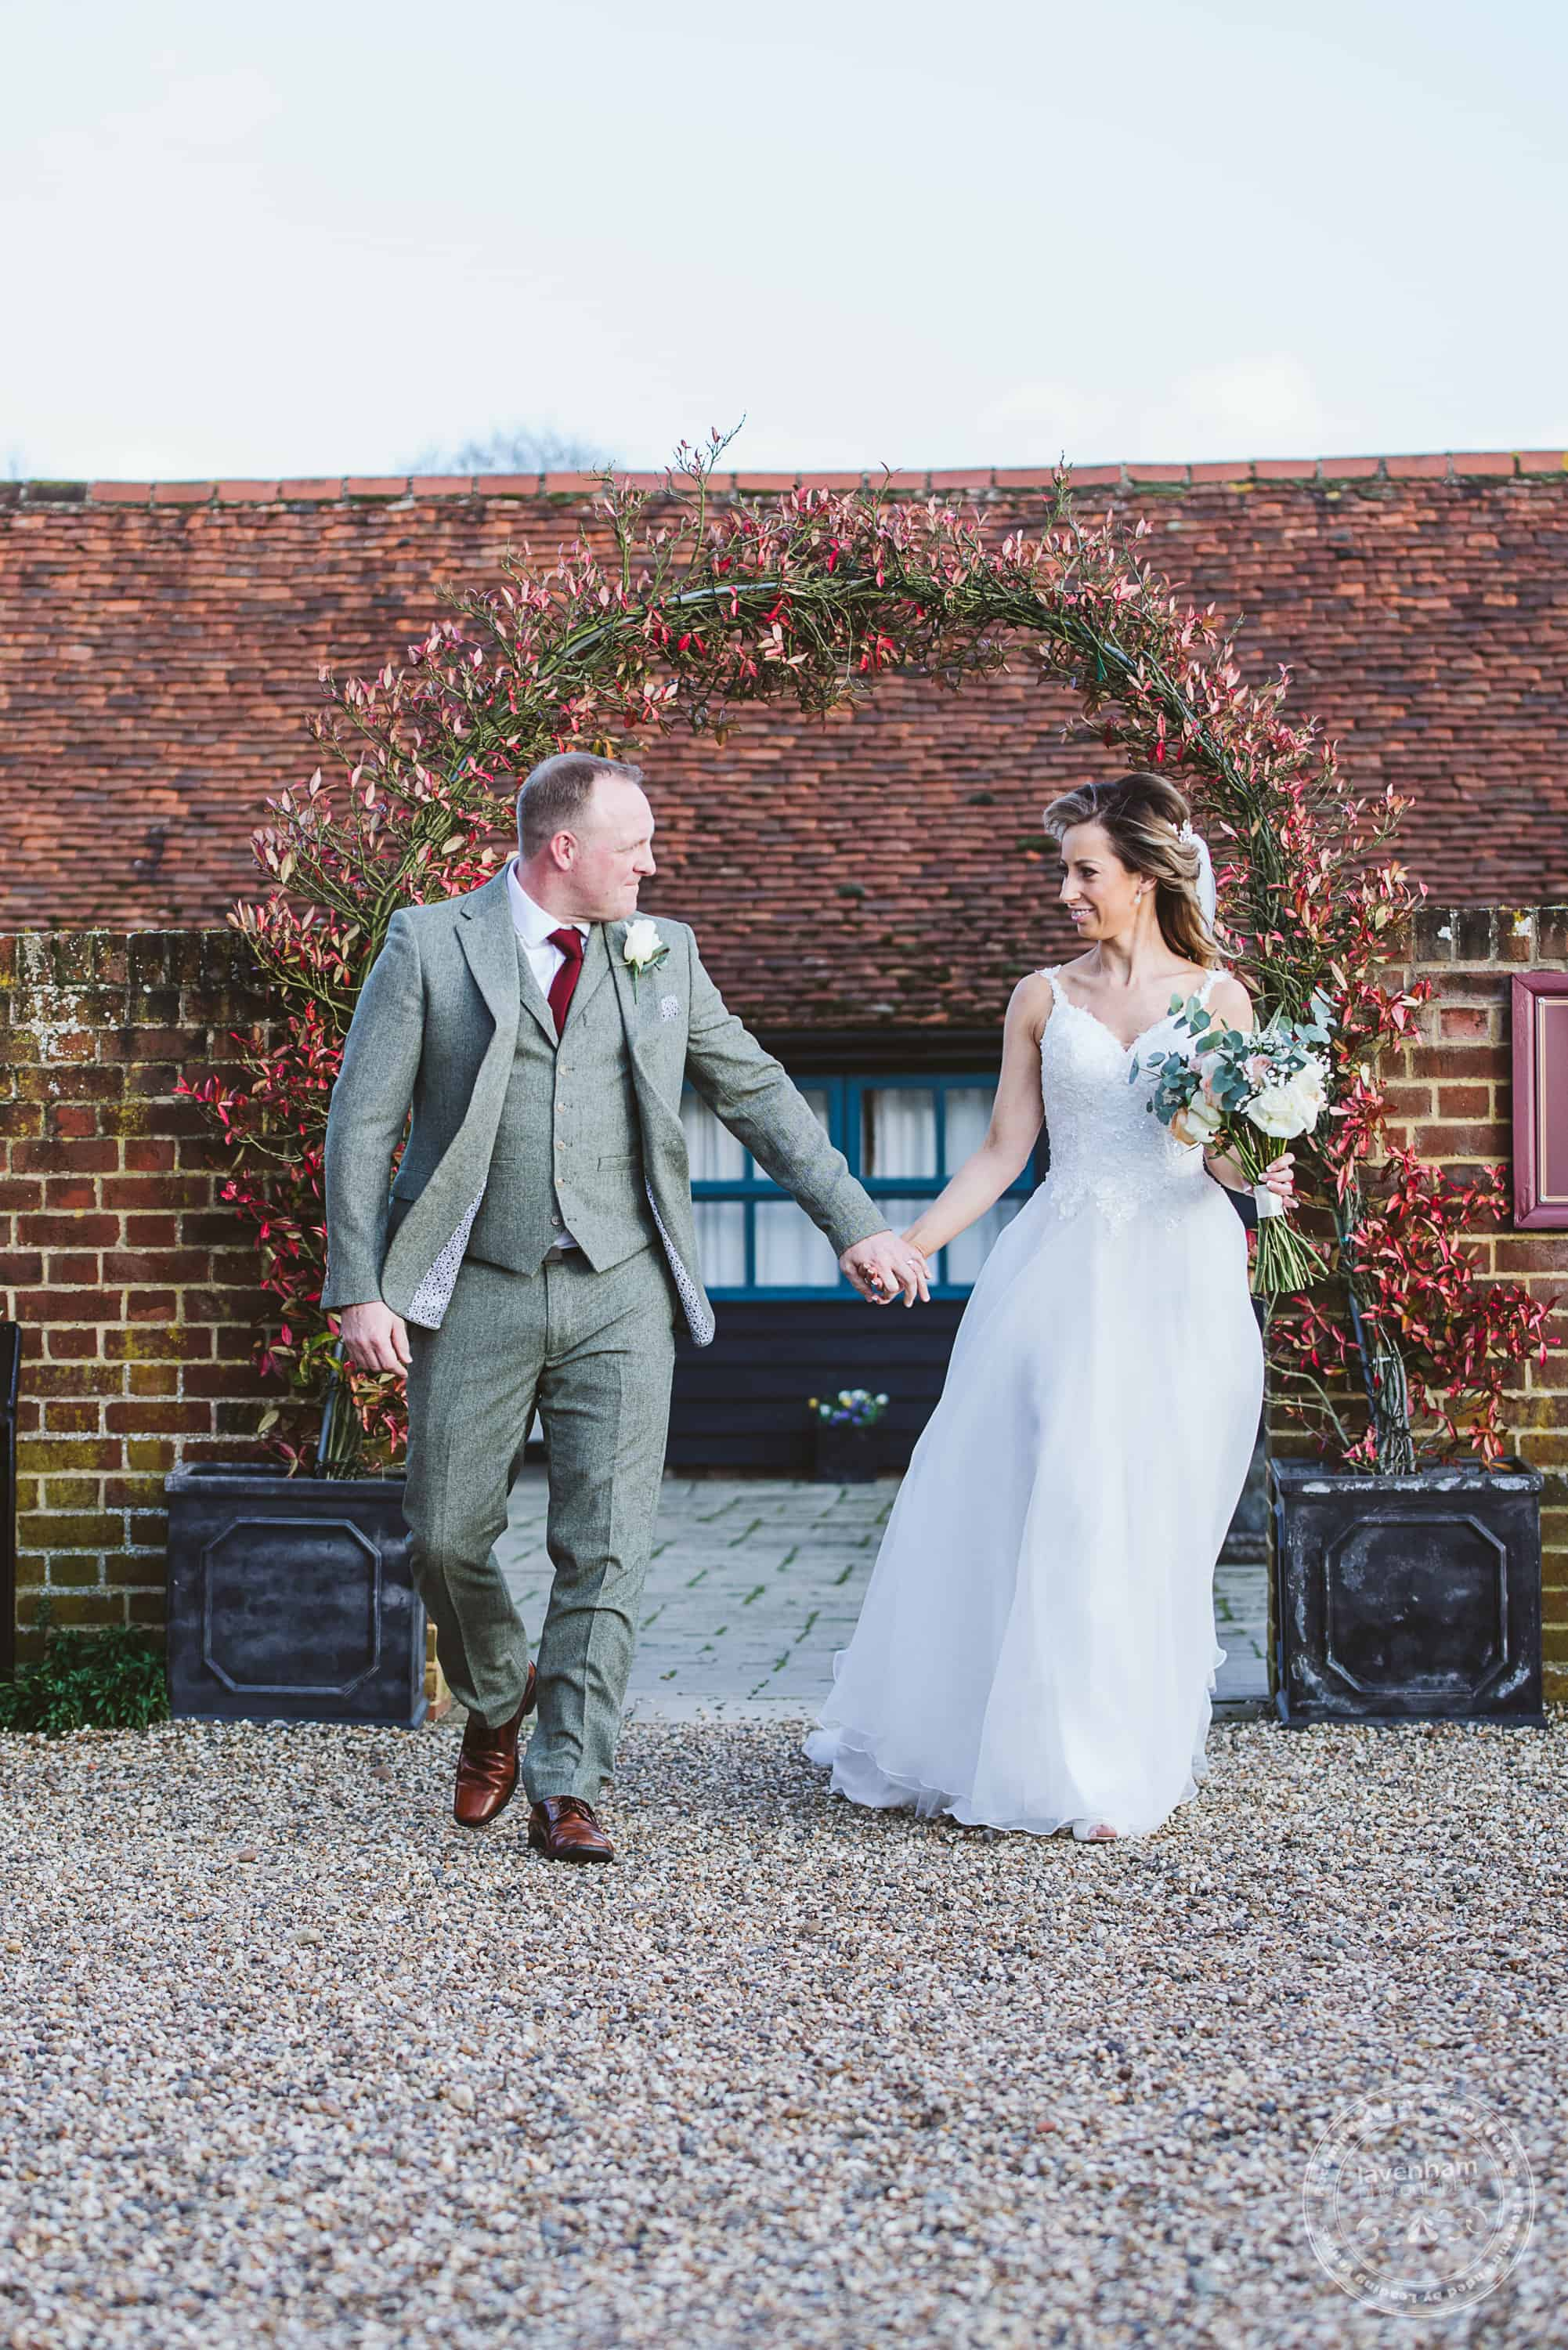 010220 Leez Priory Wedding Photographer 060